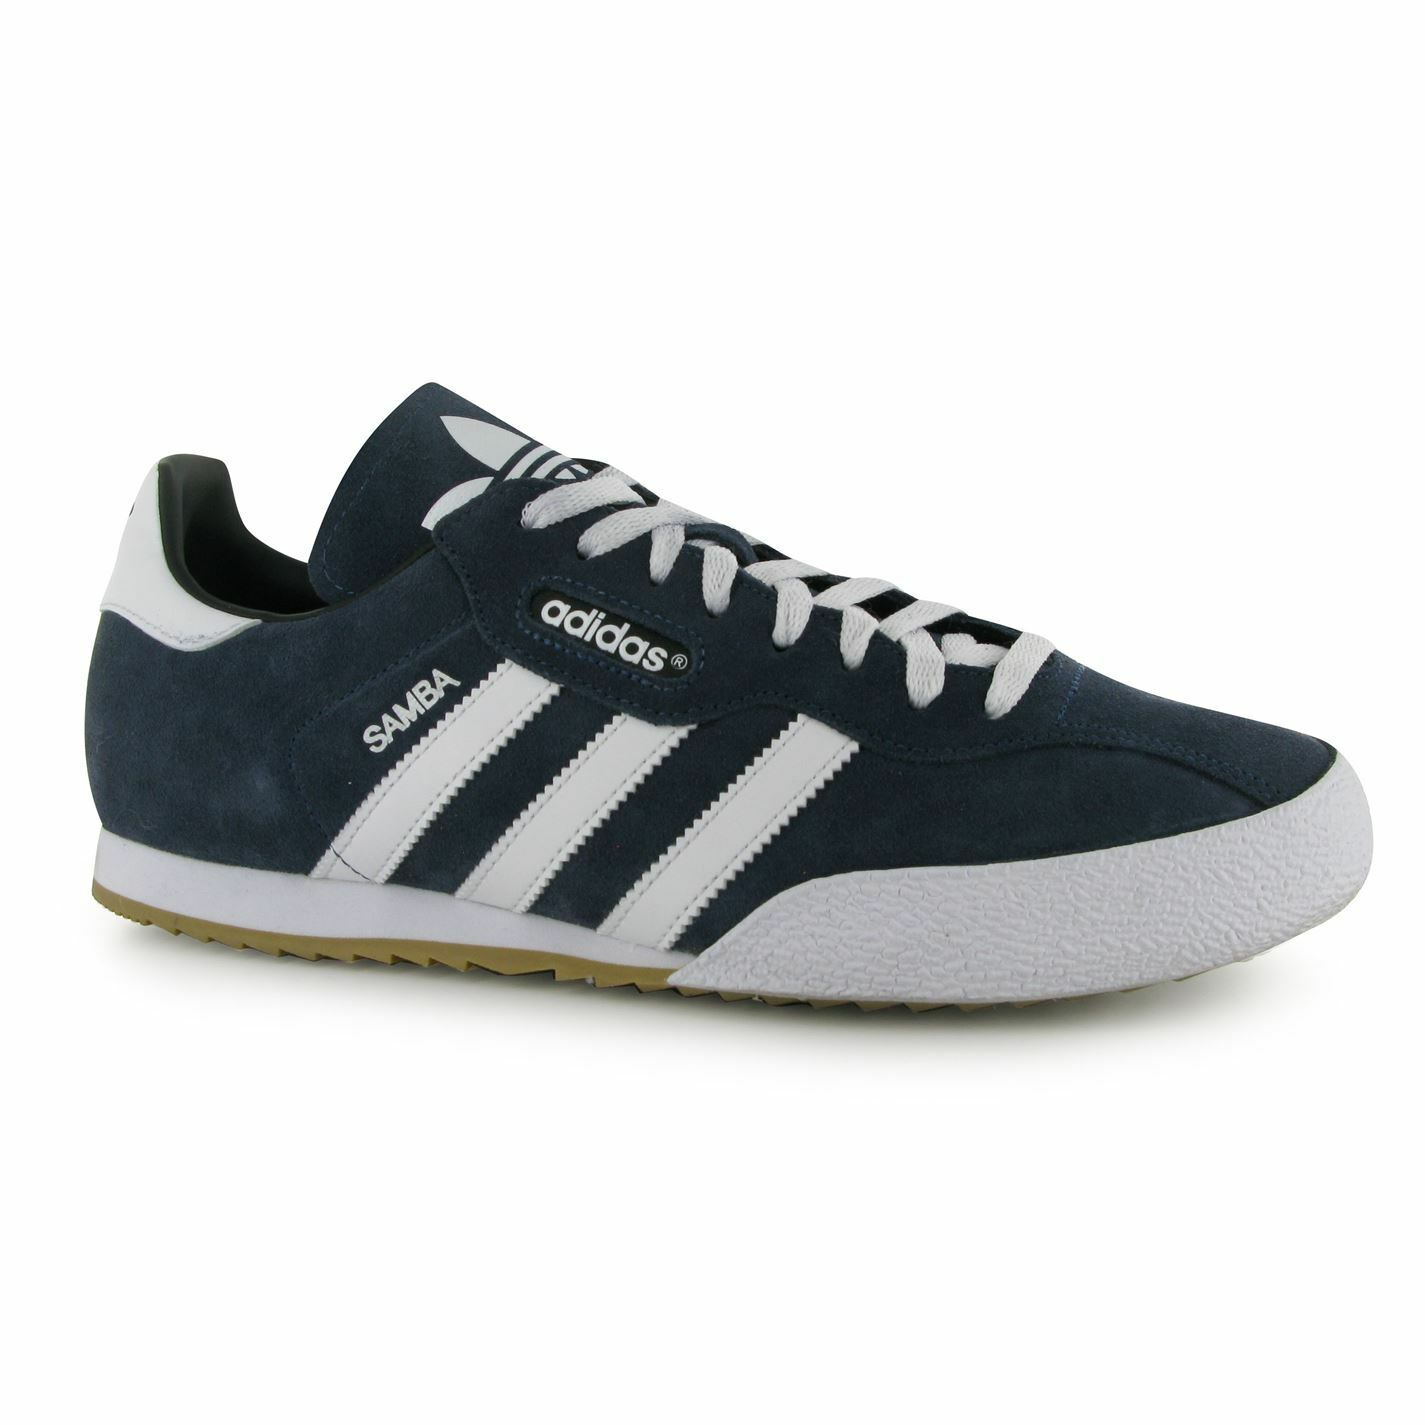 New 2018 Adidas Original Mens Samba Suede Shoes Trainers Navy/White Sizes 4-14